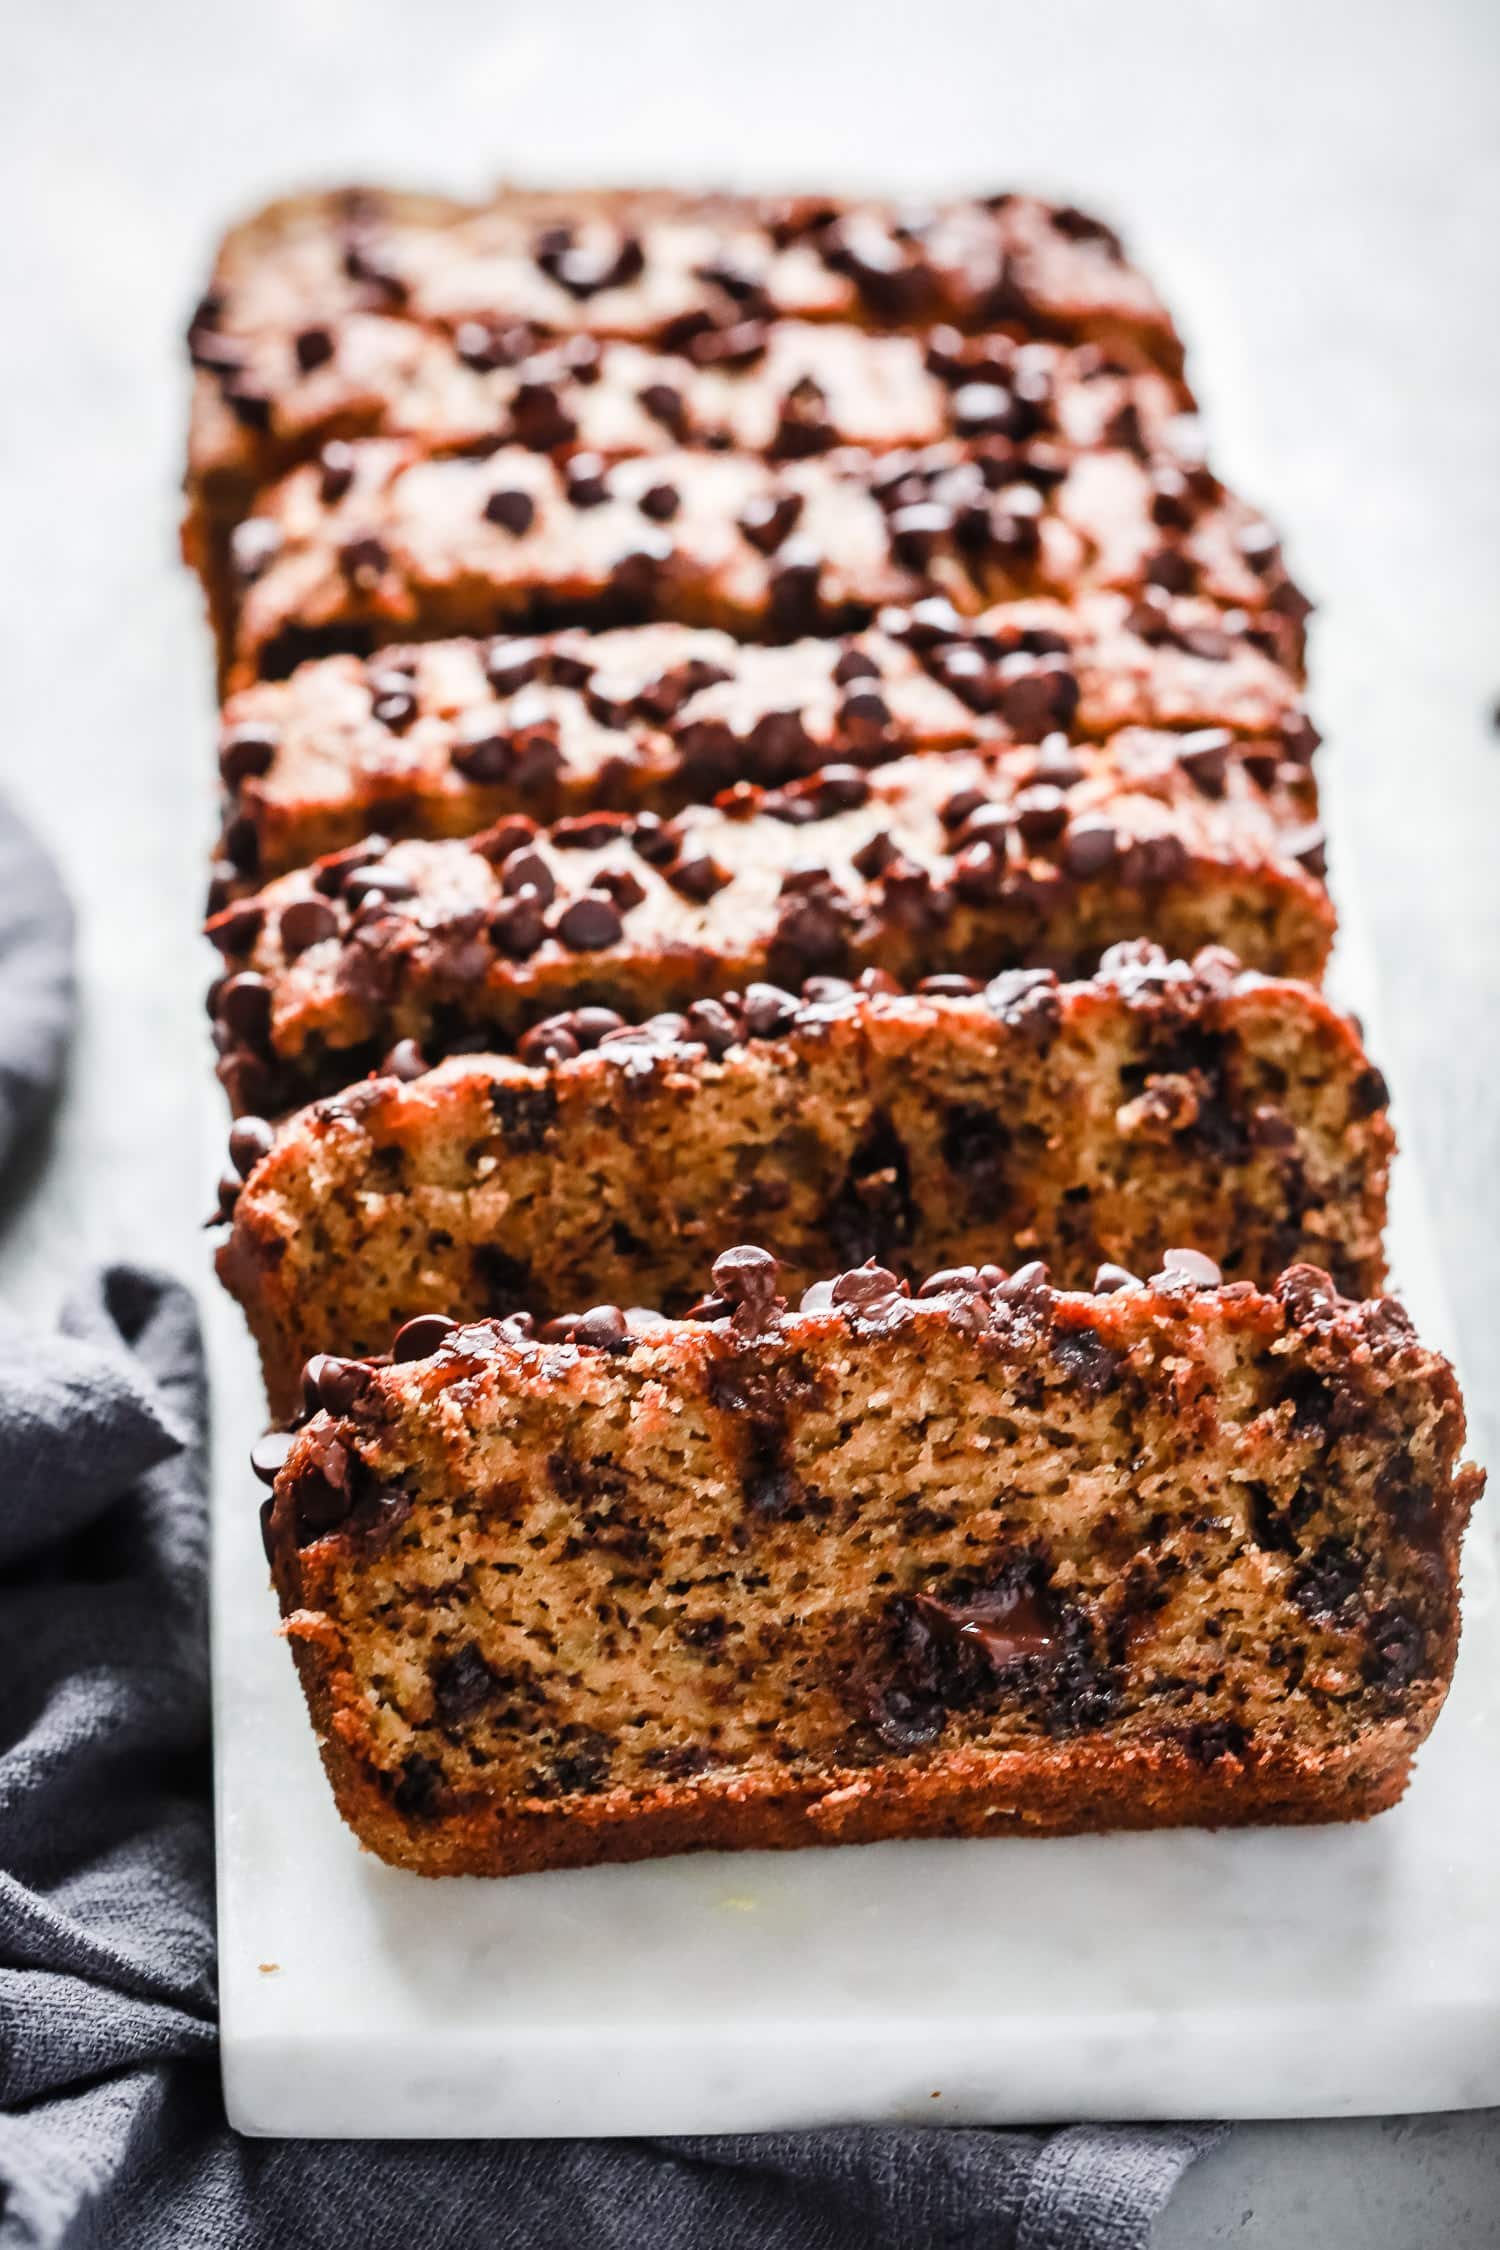 Paleo Chocolate Chips Almond Flour Banana Bread